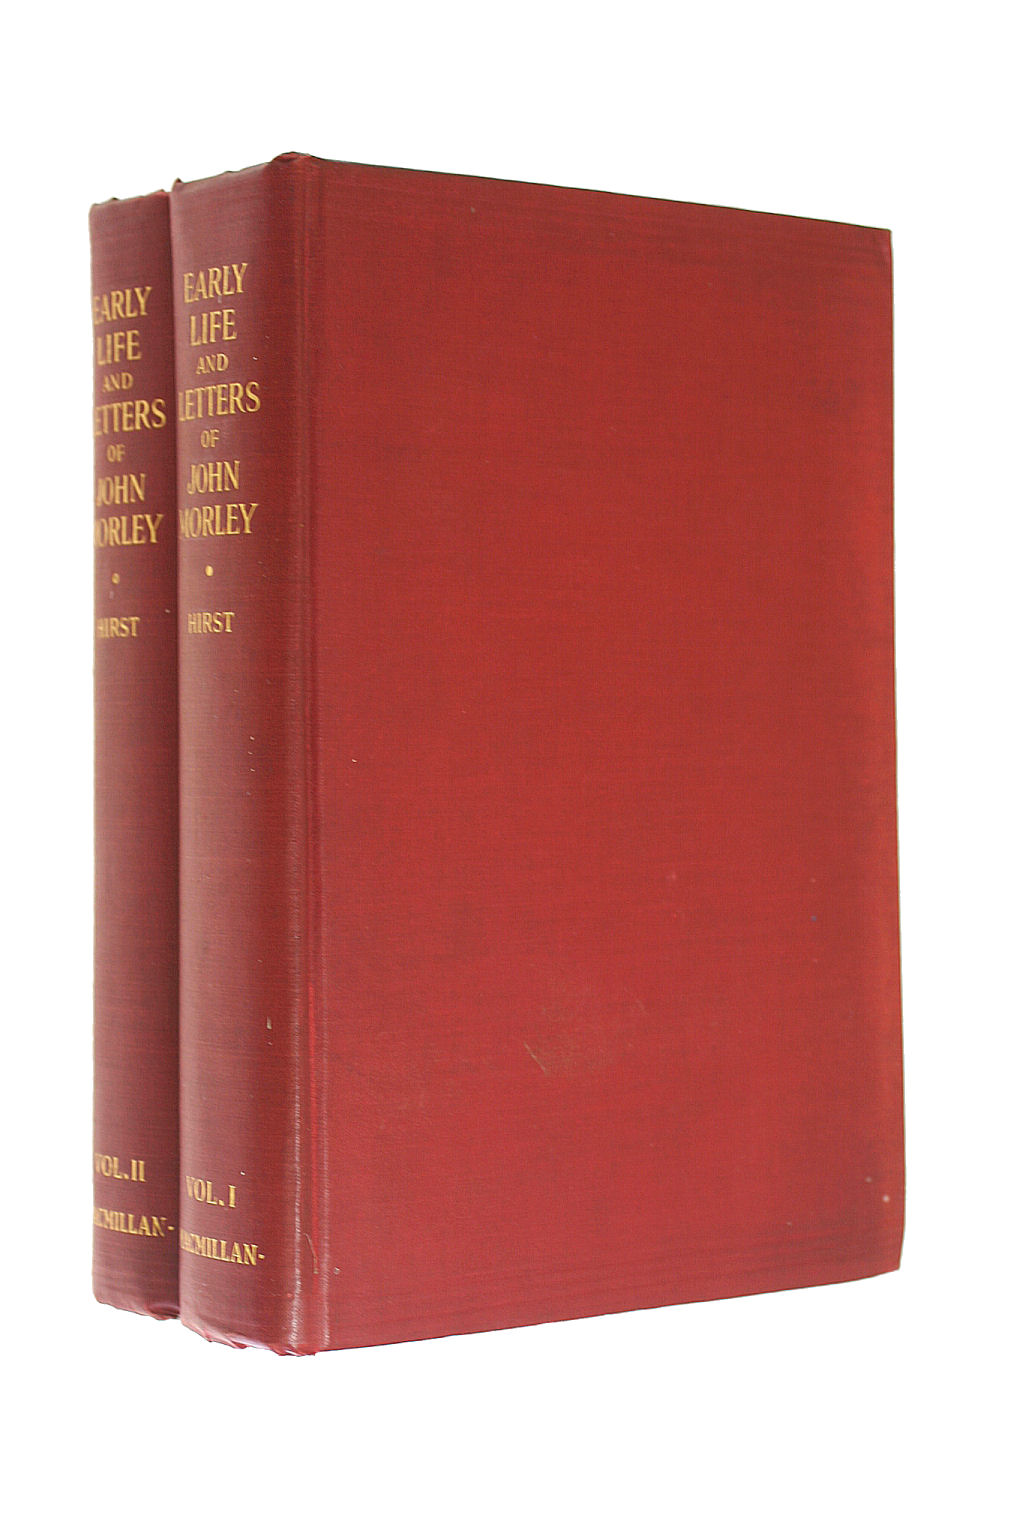 Image for Early Life and Letters of John Morley - Vols. I & II